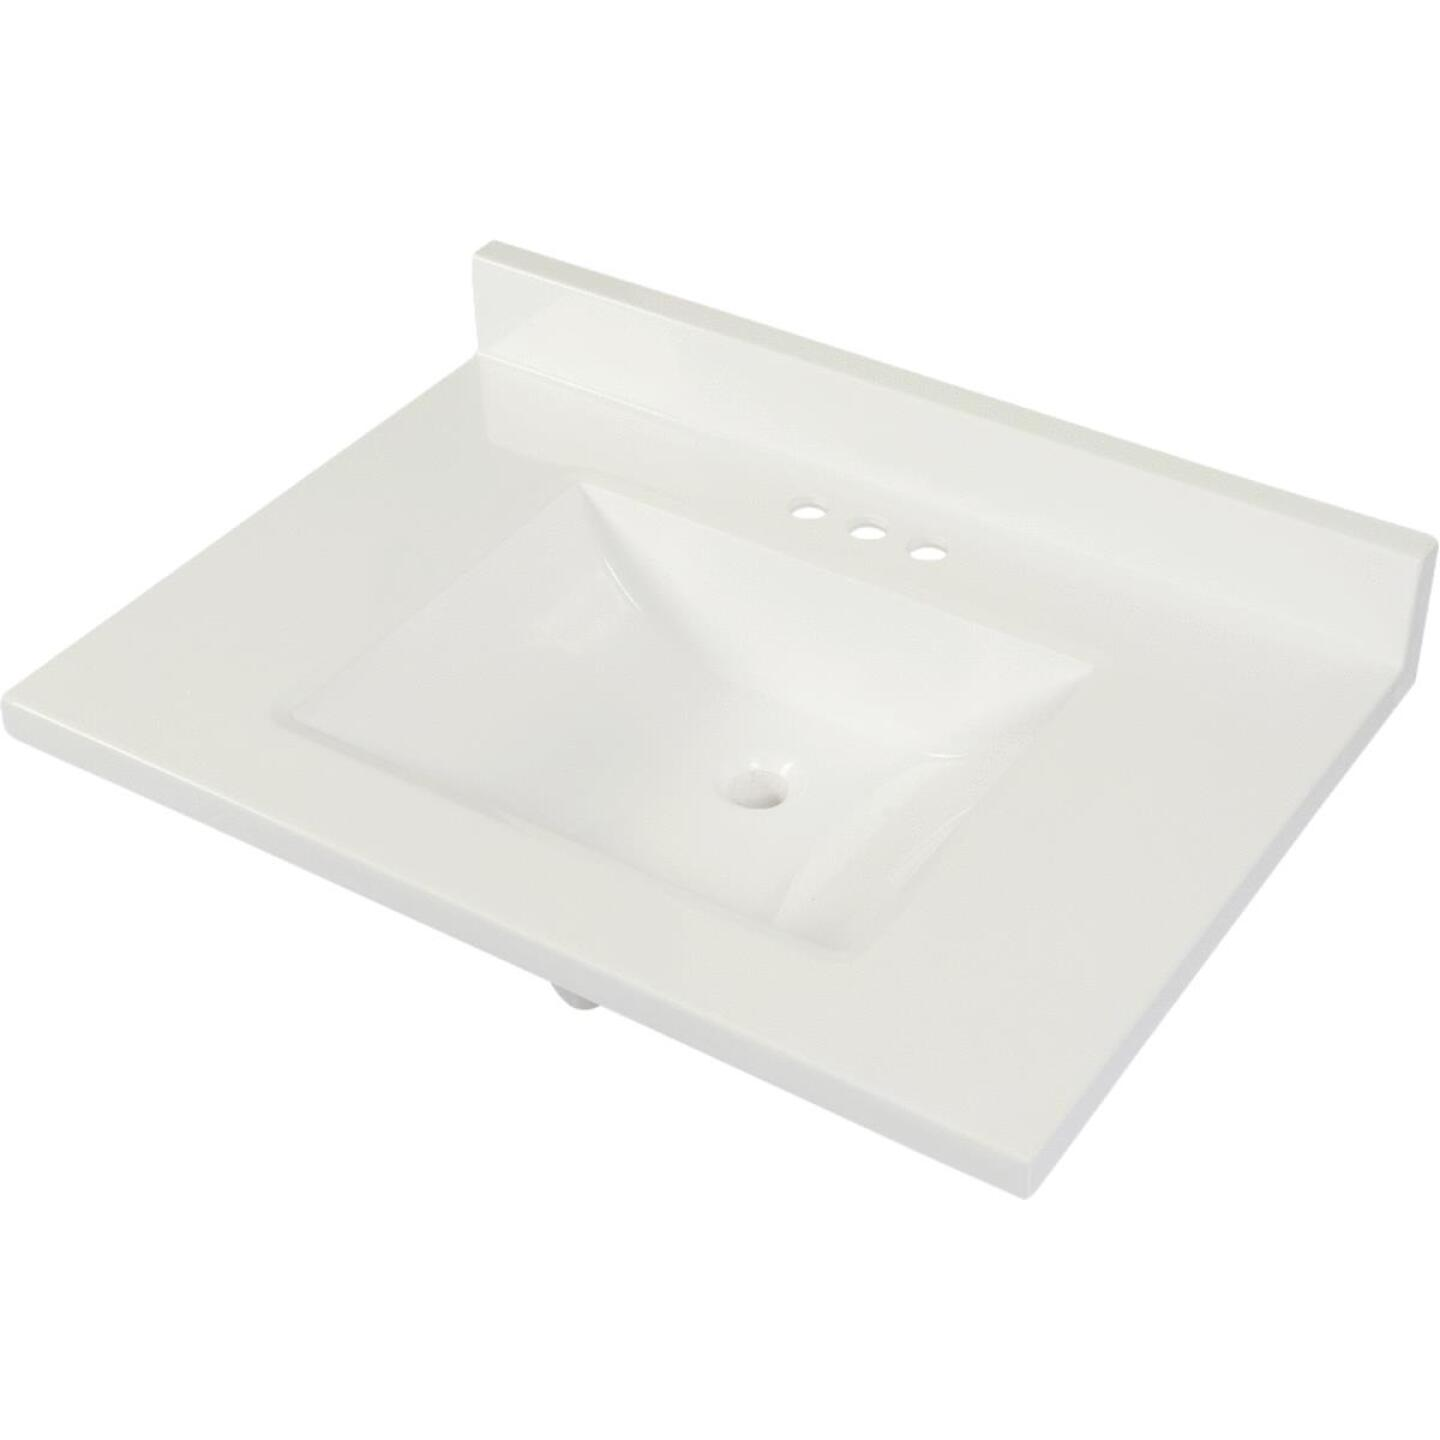 Modular Vanity Tops 31 In. W x 22 In. D Solid White Cultured Marble Vanity Top with Rectangular Wave Bowl Image 1